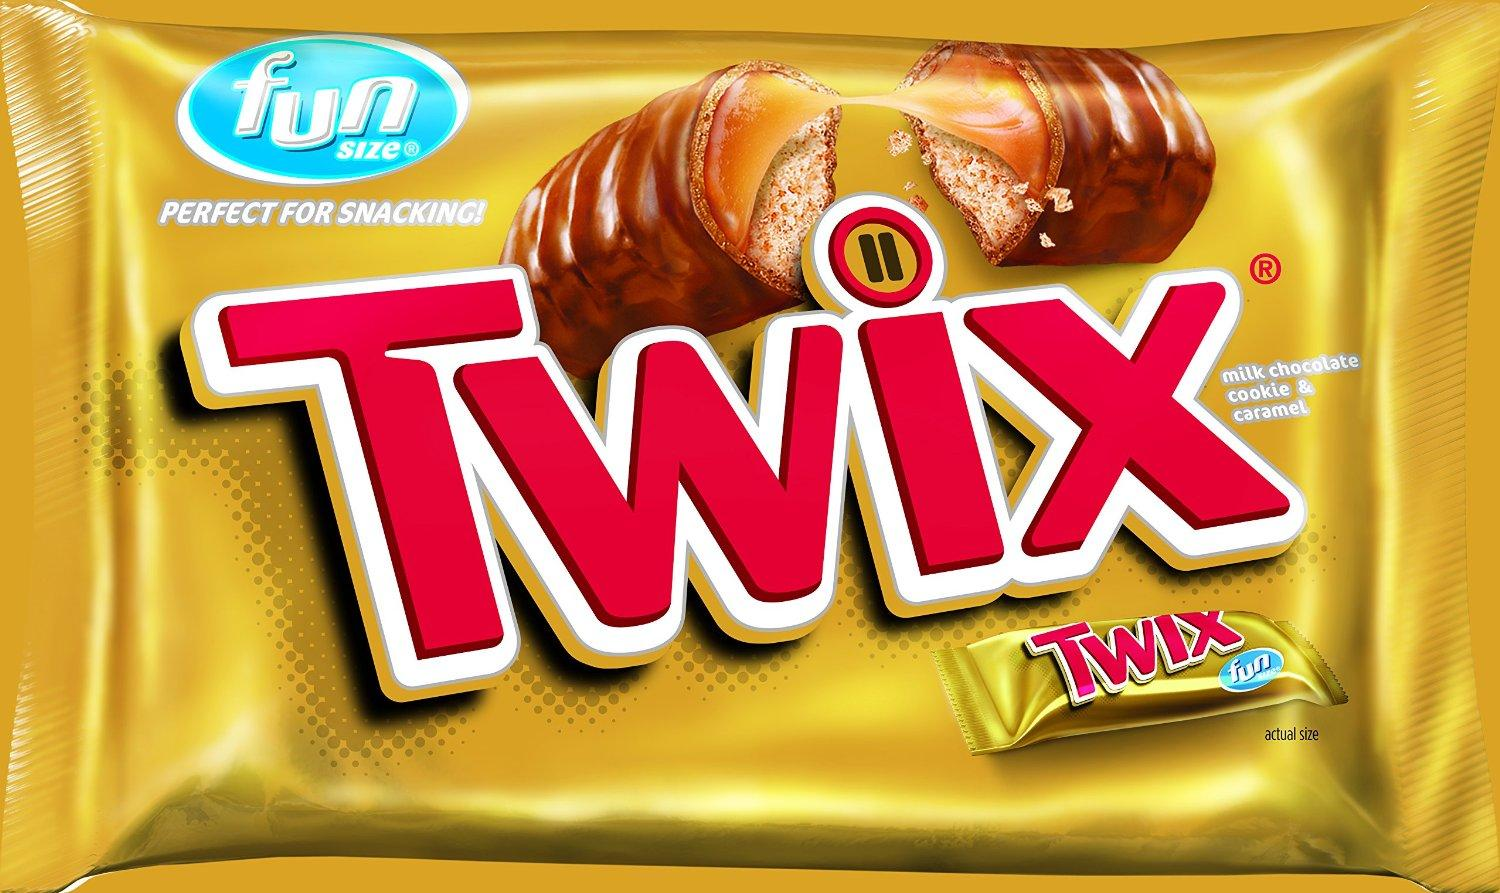 Twix Caramel Fun Size Chocolate Candy, 22.34 Ounce Bag (Pack of 2)